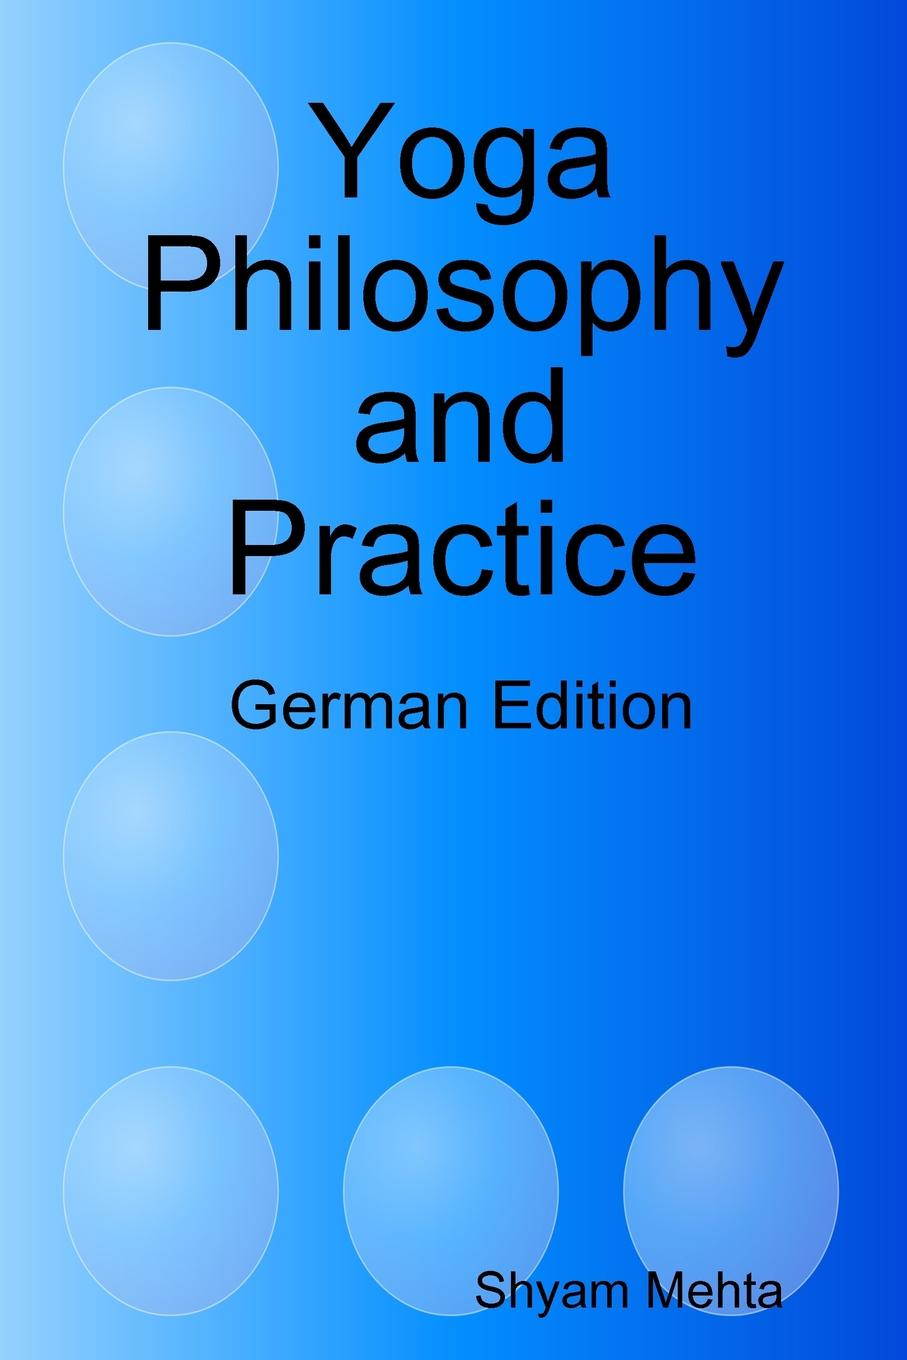 Shyam Mehta Yoga Philosophy and Practice. German Edition фитнес блоки hatha ht ygz yoga eva